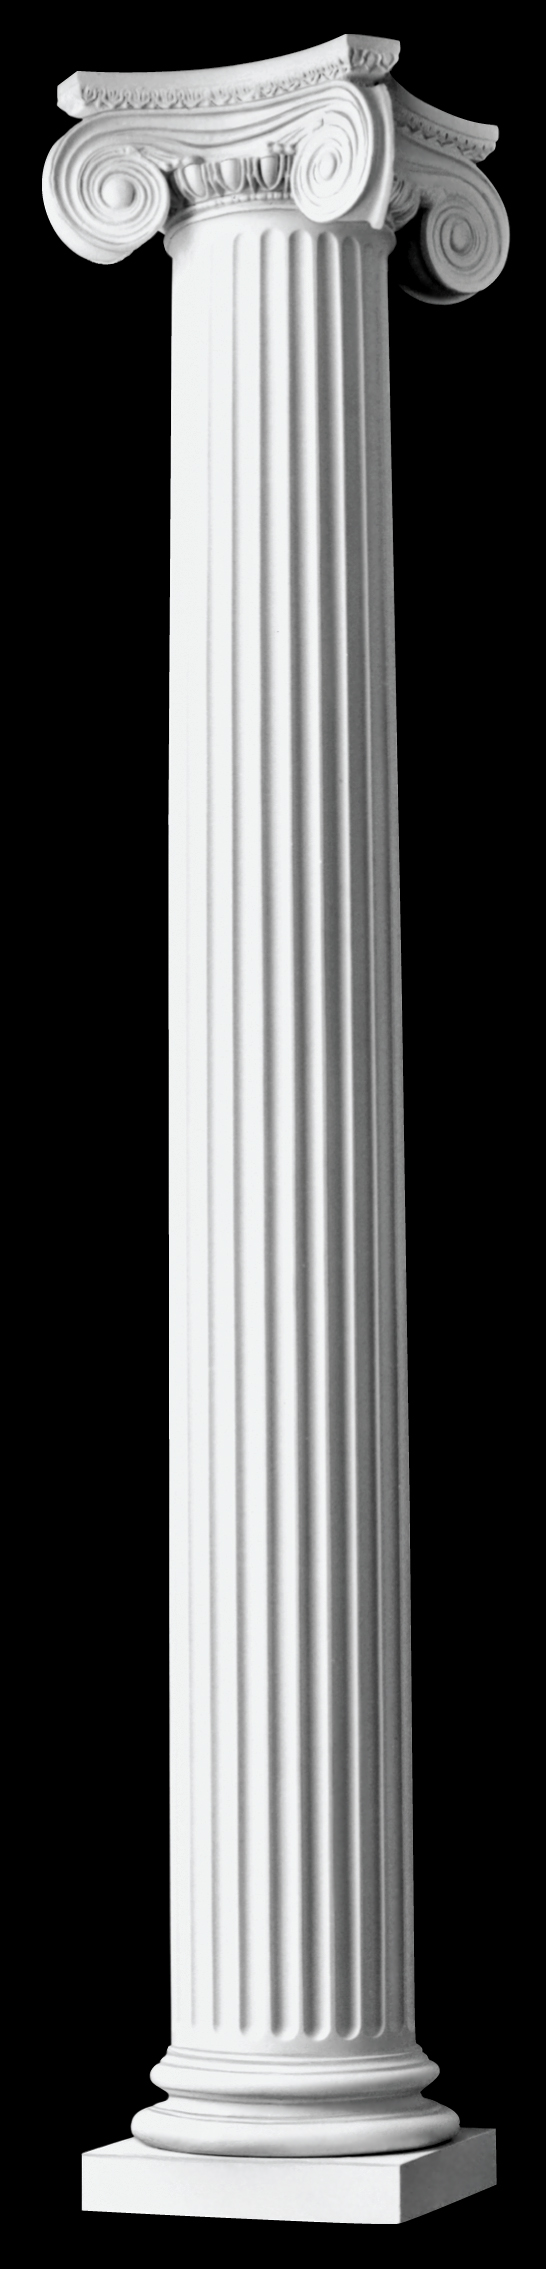 Architectural Column Base : Fluted architectural wood columns greek angular ionic design